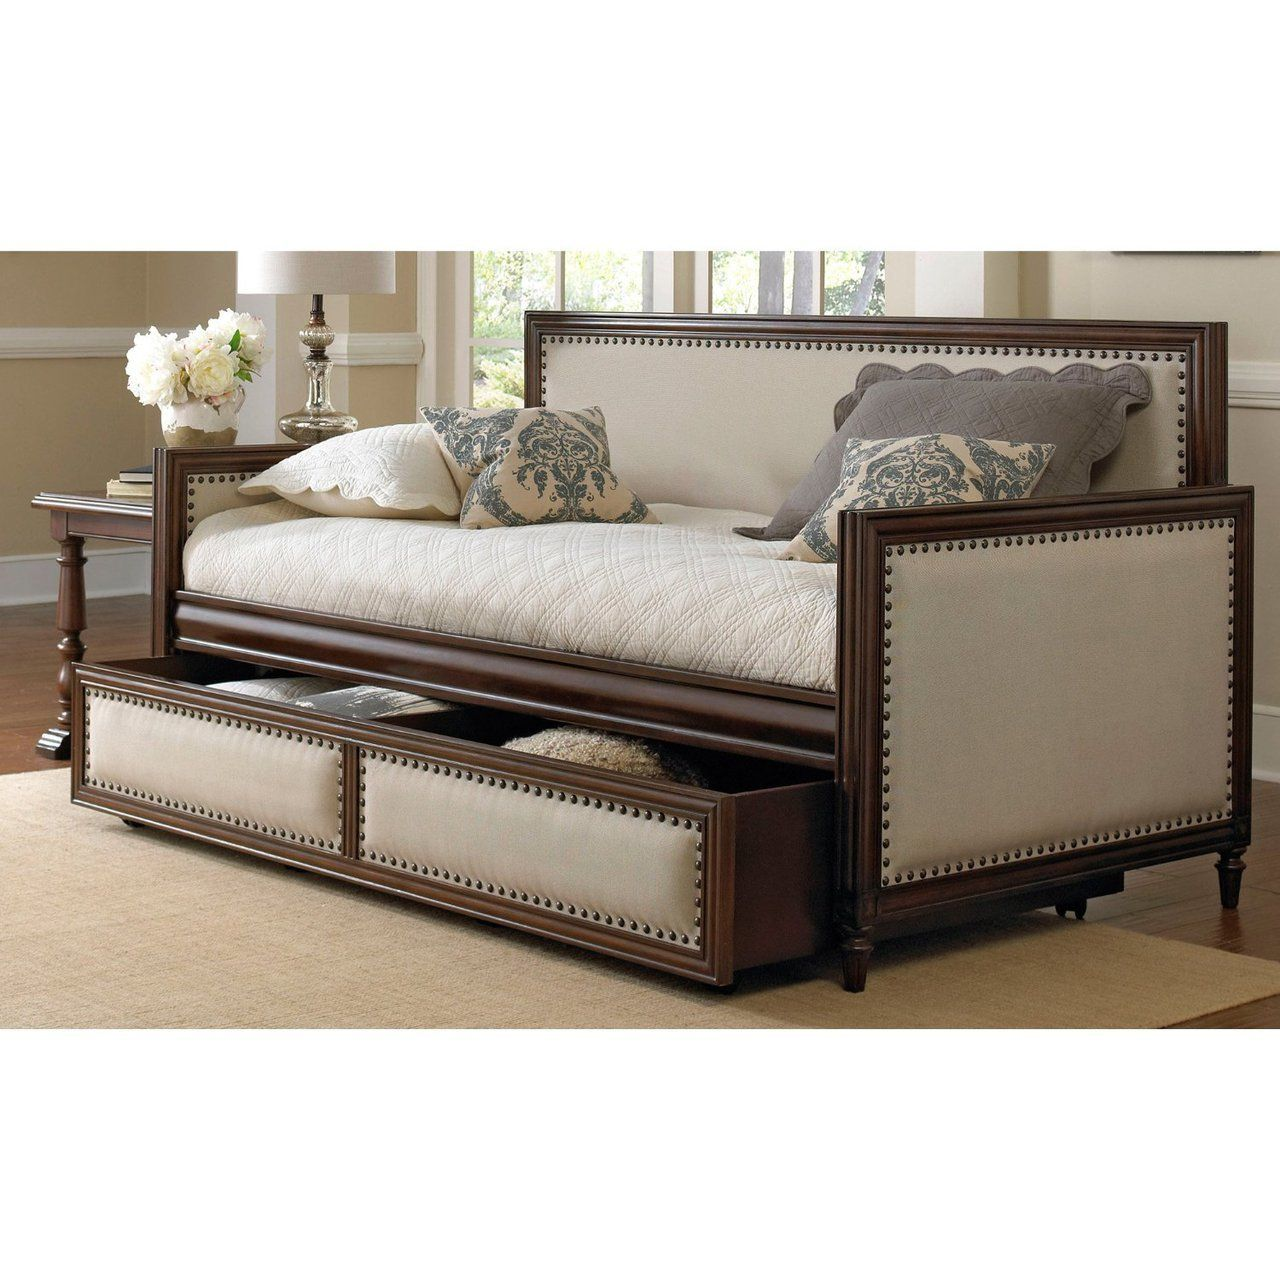 Fashion Bed Group Grandover Wood